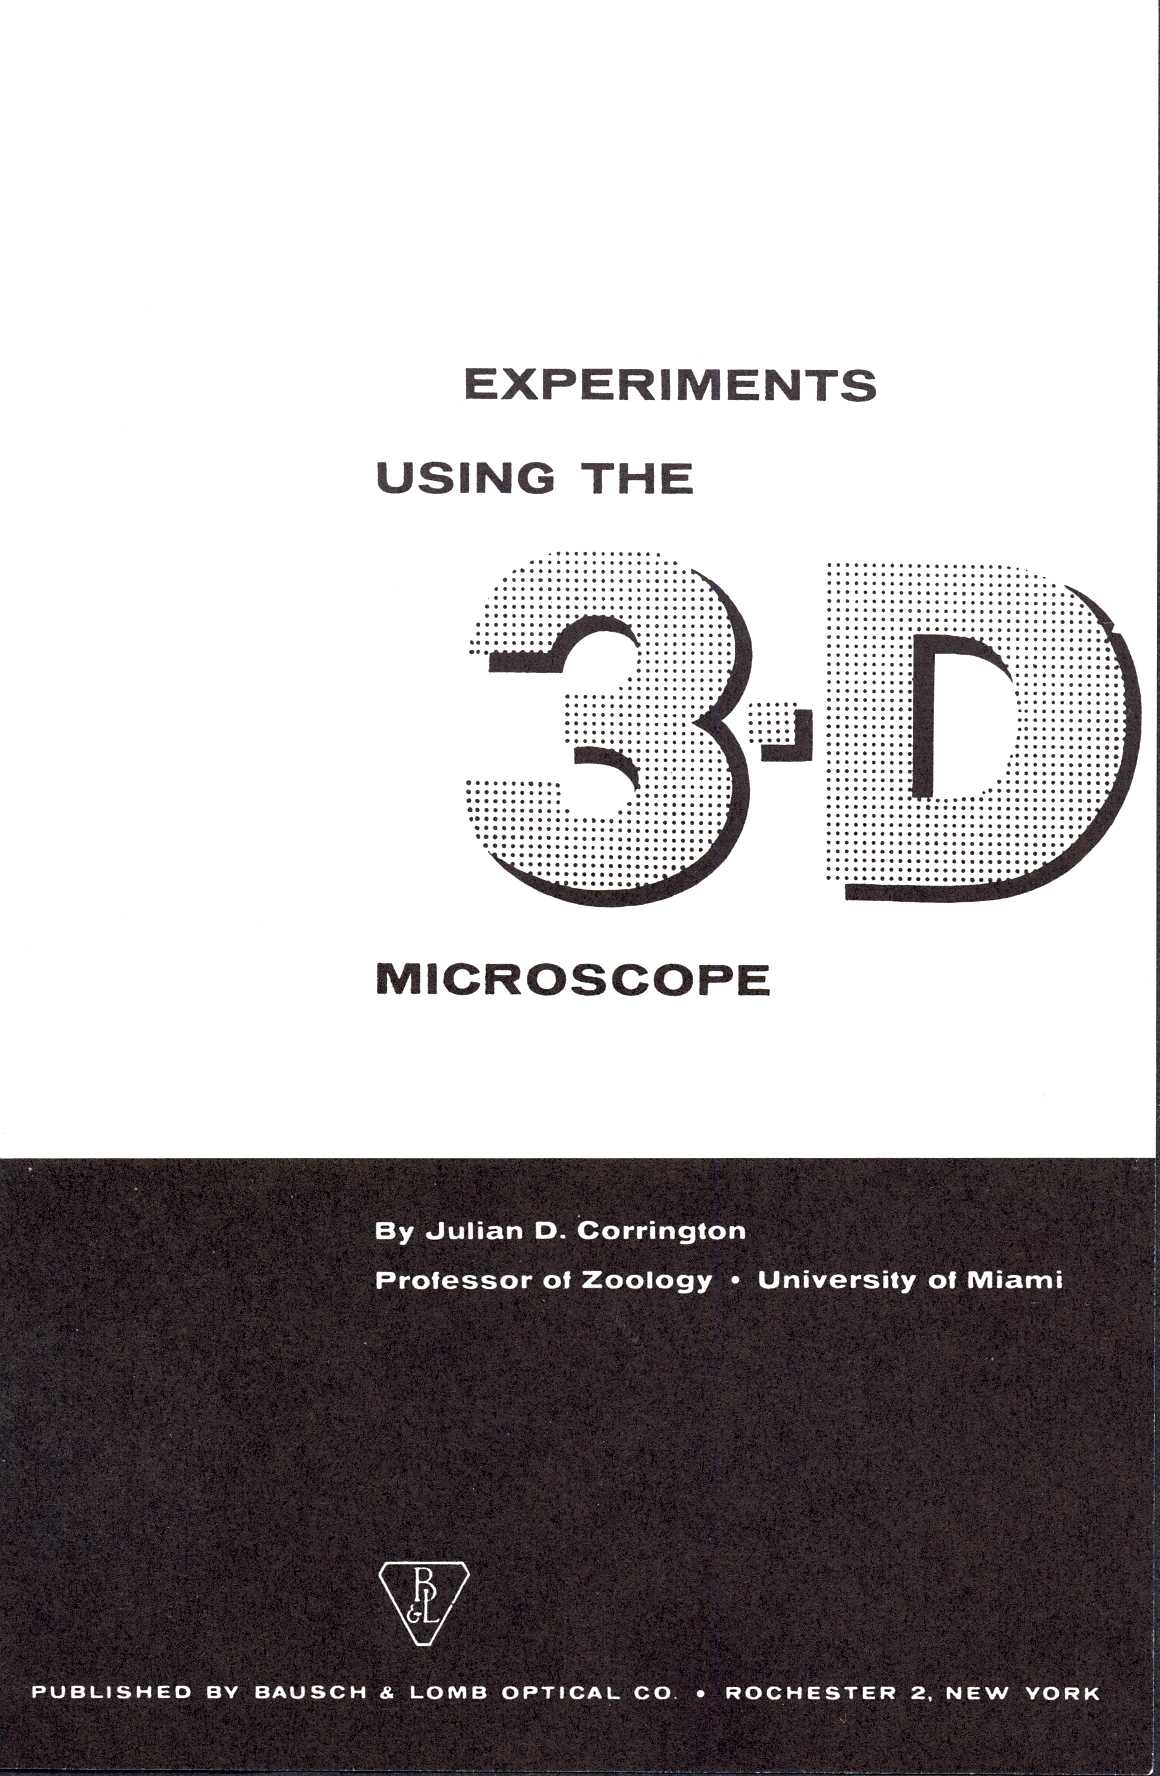 Julian D. Corrington and the Bausch & Lomb Microscopes for